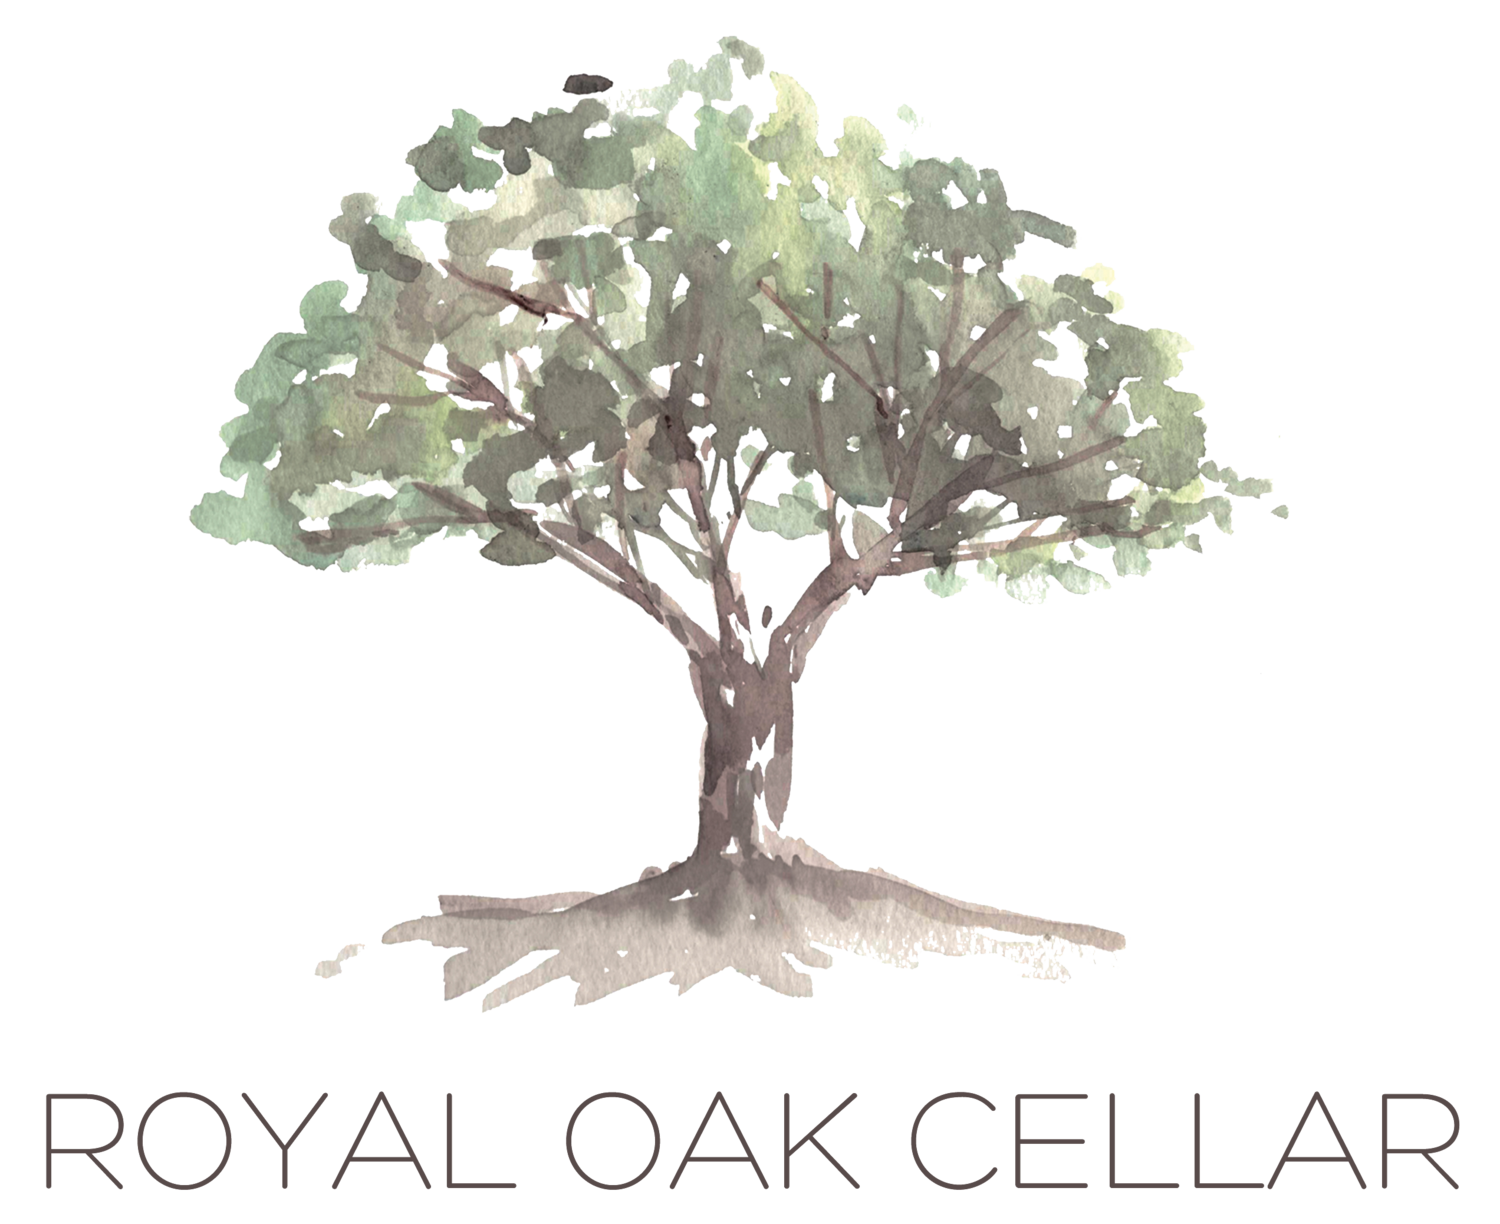 Royal Oak Cellar